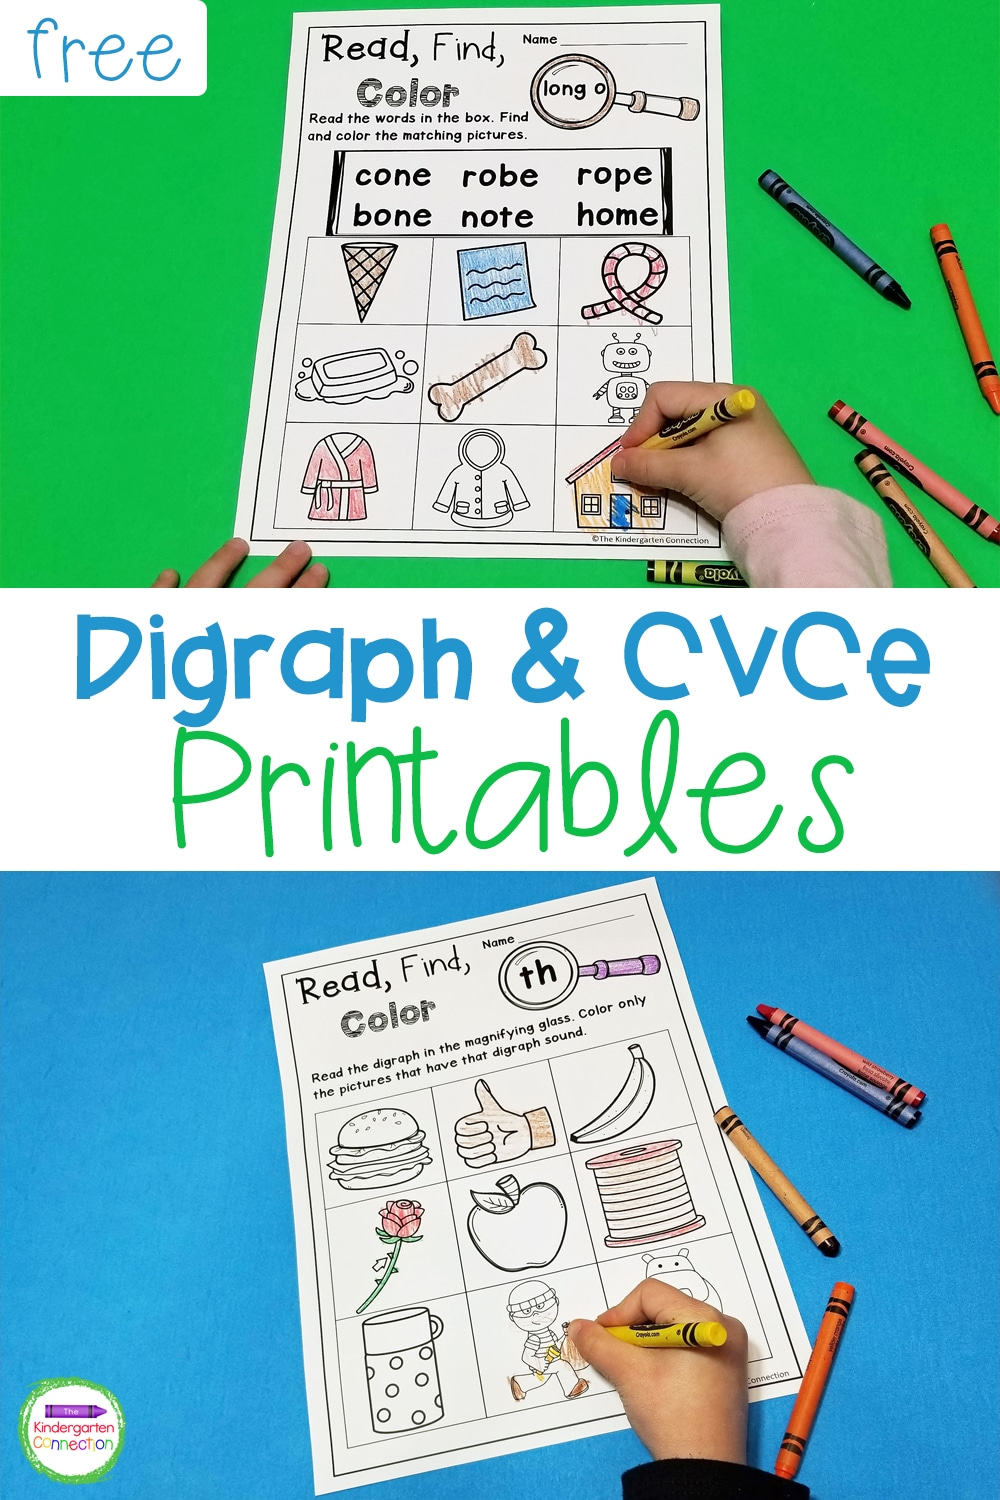 These free Printable Digraph and CVCe Activities are perfect for practice with identifying digraph sounds and reading long vowel words!